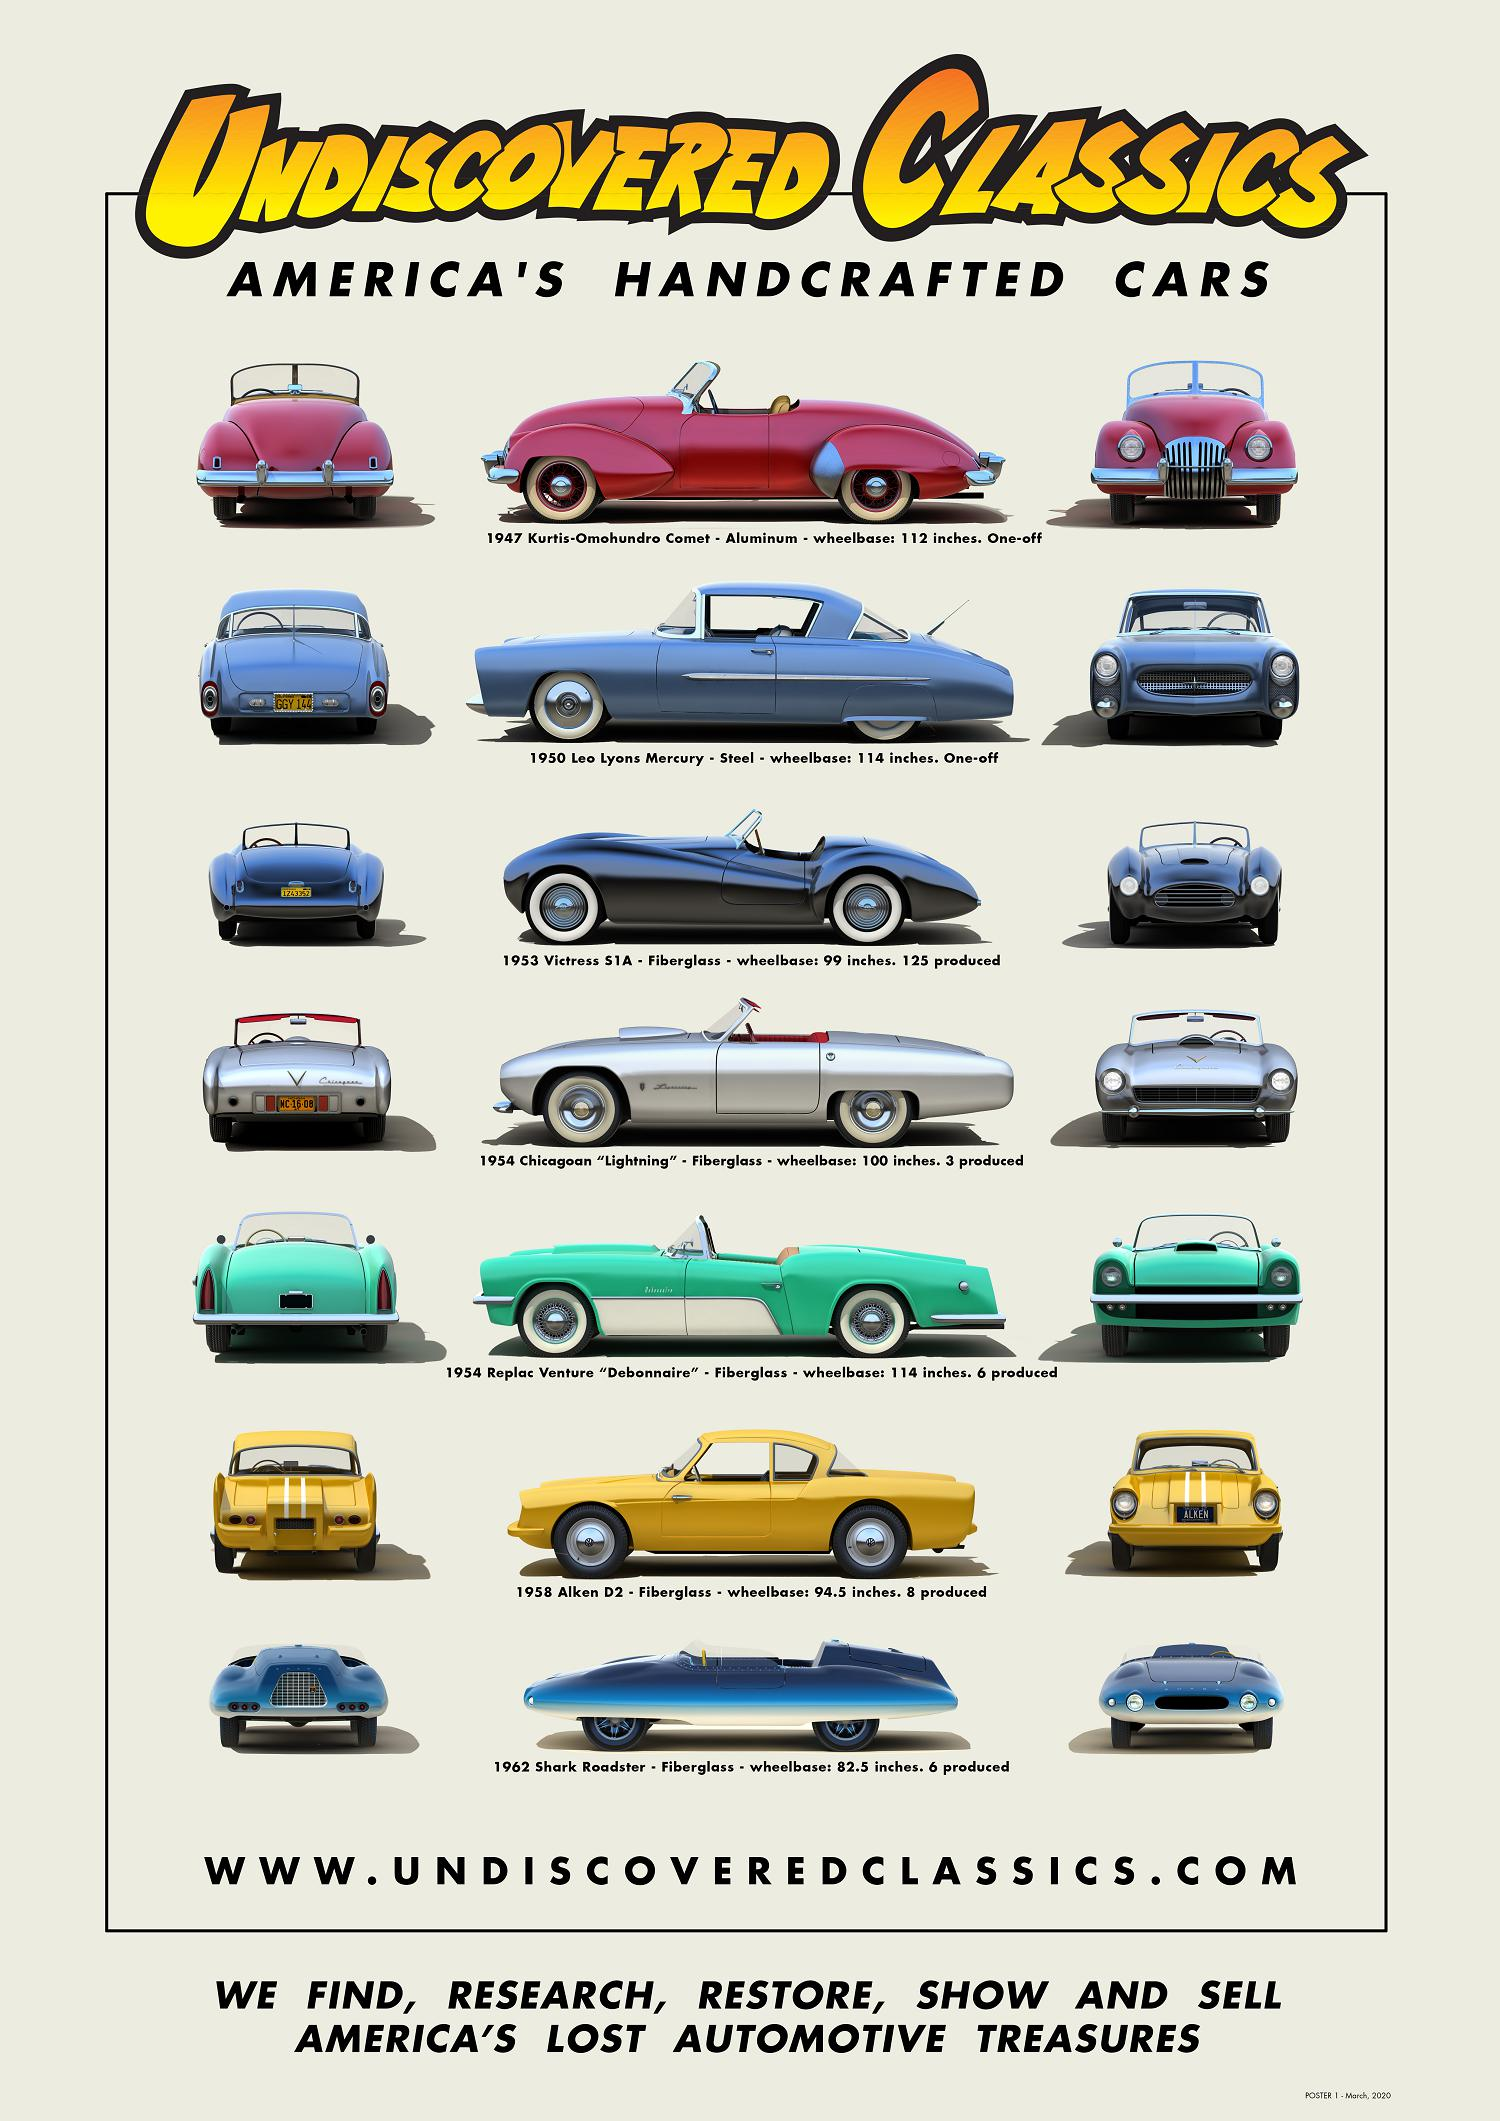 Handcrafted Cars - Poster 1